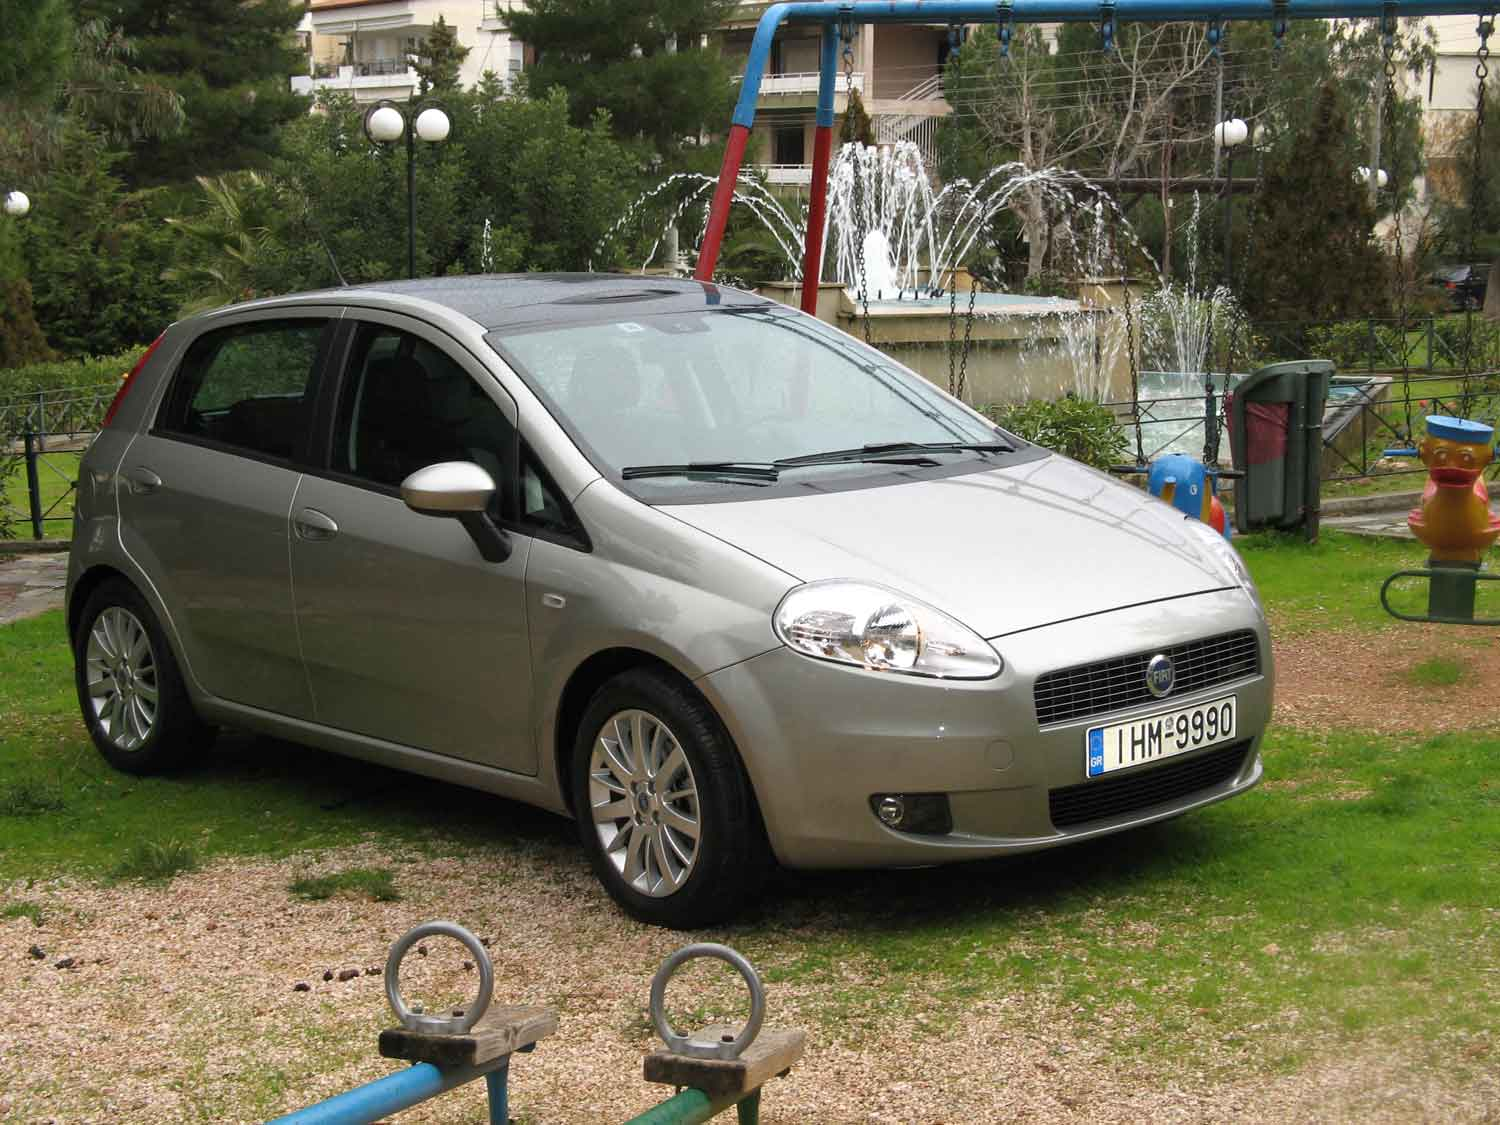 t fiat grande punto 1 4 t j test drive my2008 autoholix. Black Bedroom Furniture Sets. Home Design Ideas